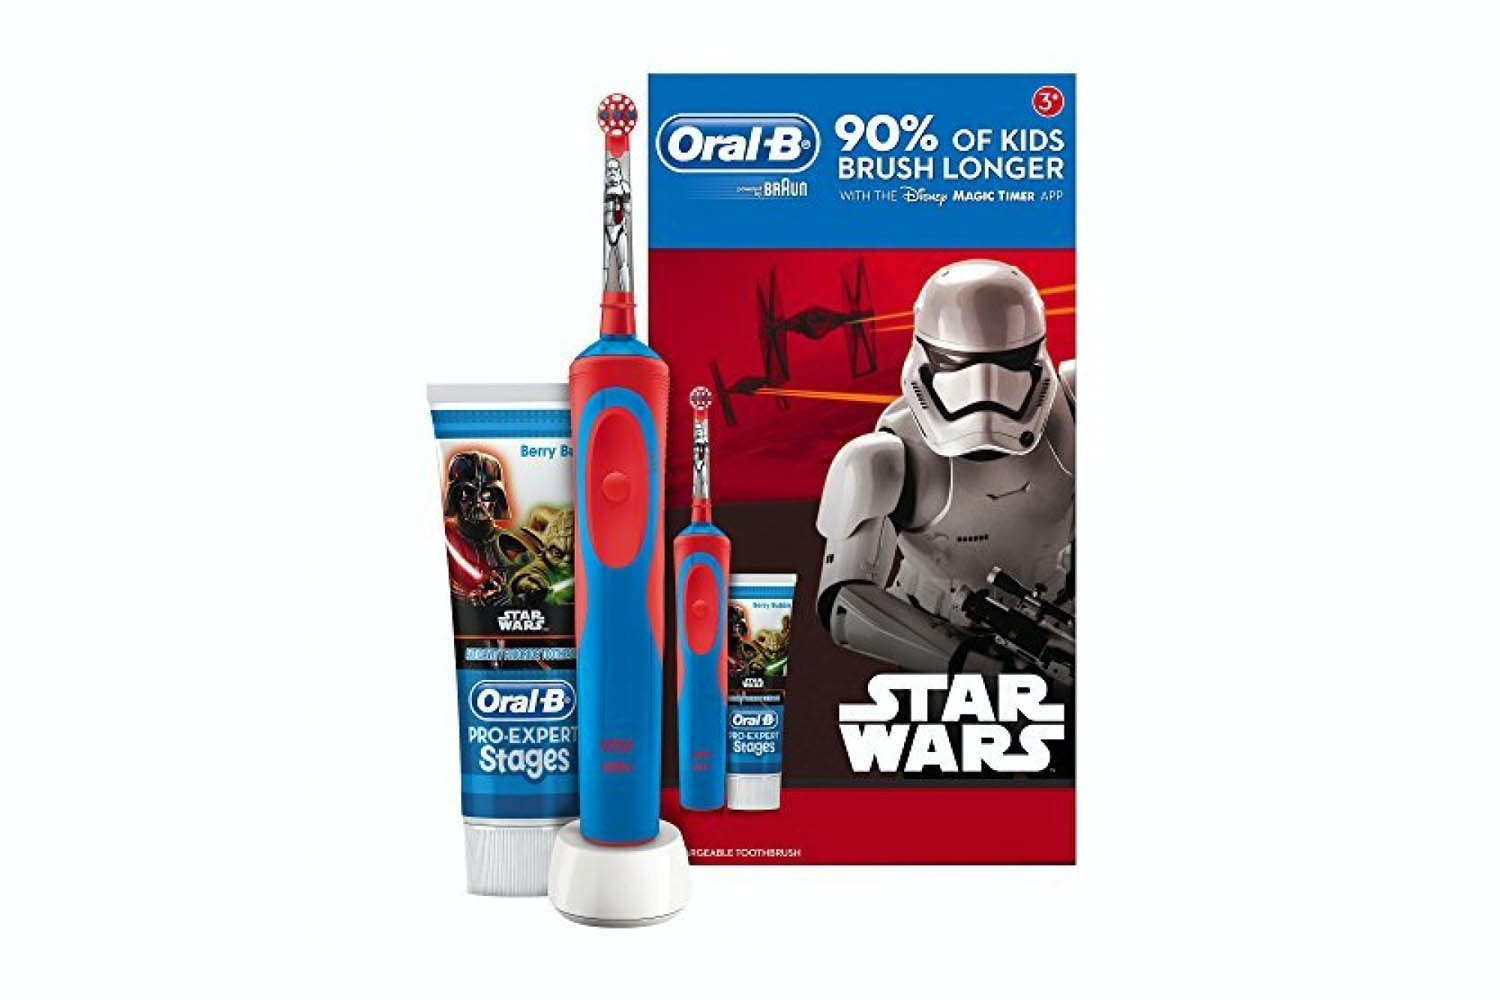 Oral-B Starwars Electric Toothbrush